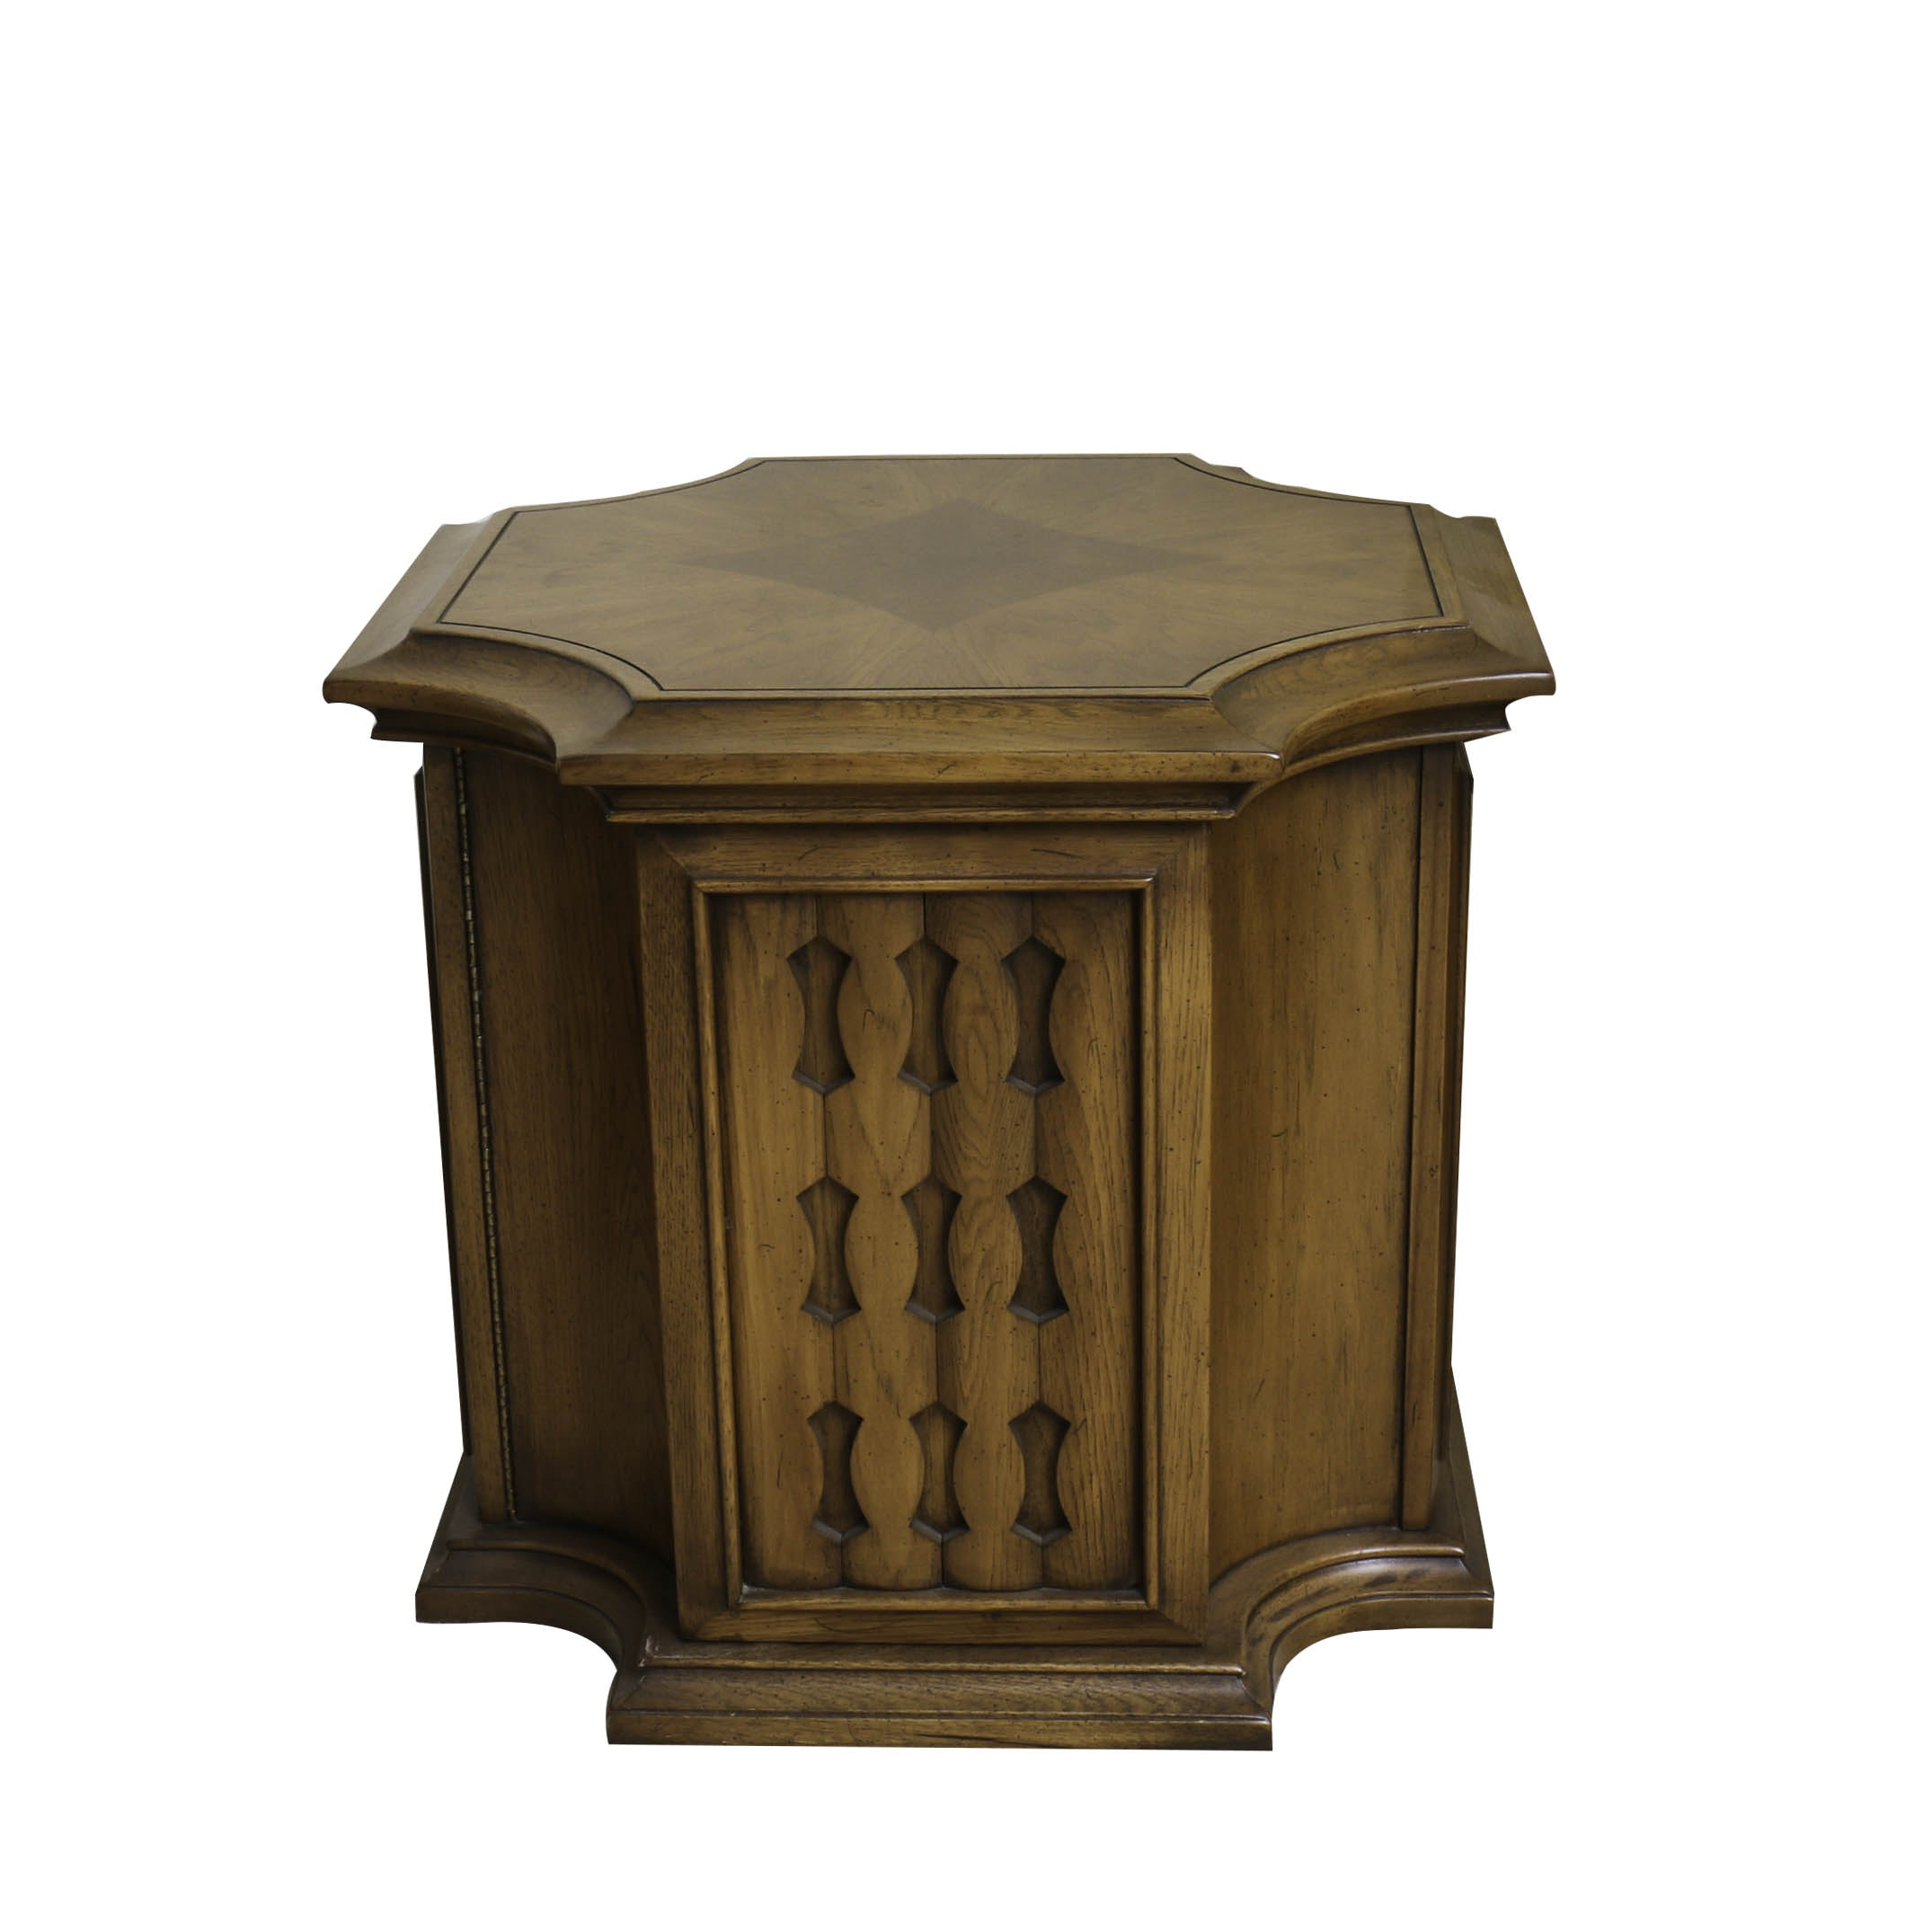 Circa 1970s Side Table with Cabinet by Gordon's, Inc.